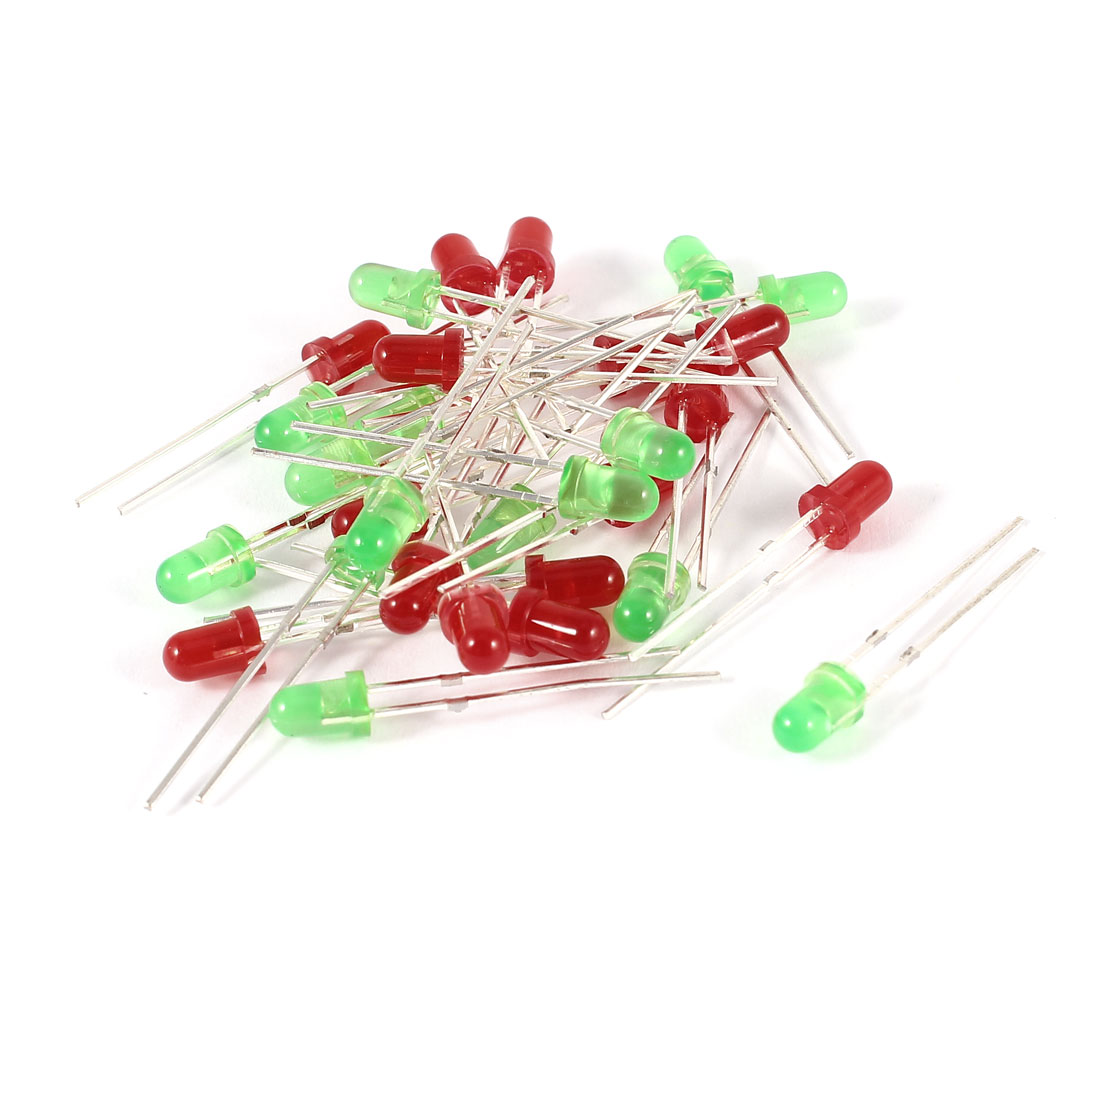 30 Pcs Straw Hat 3mm Red Green LED Light Emitting Diode DC 2.5-3.0V